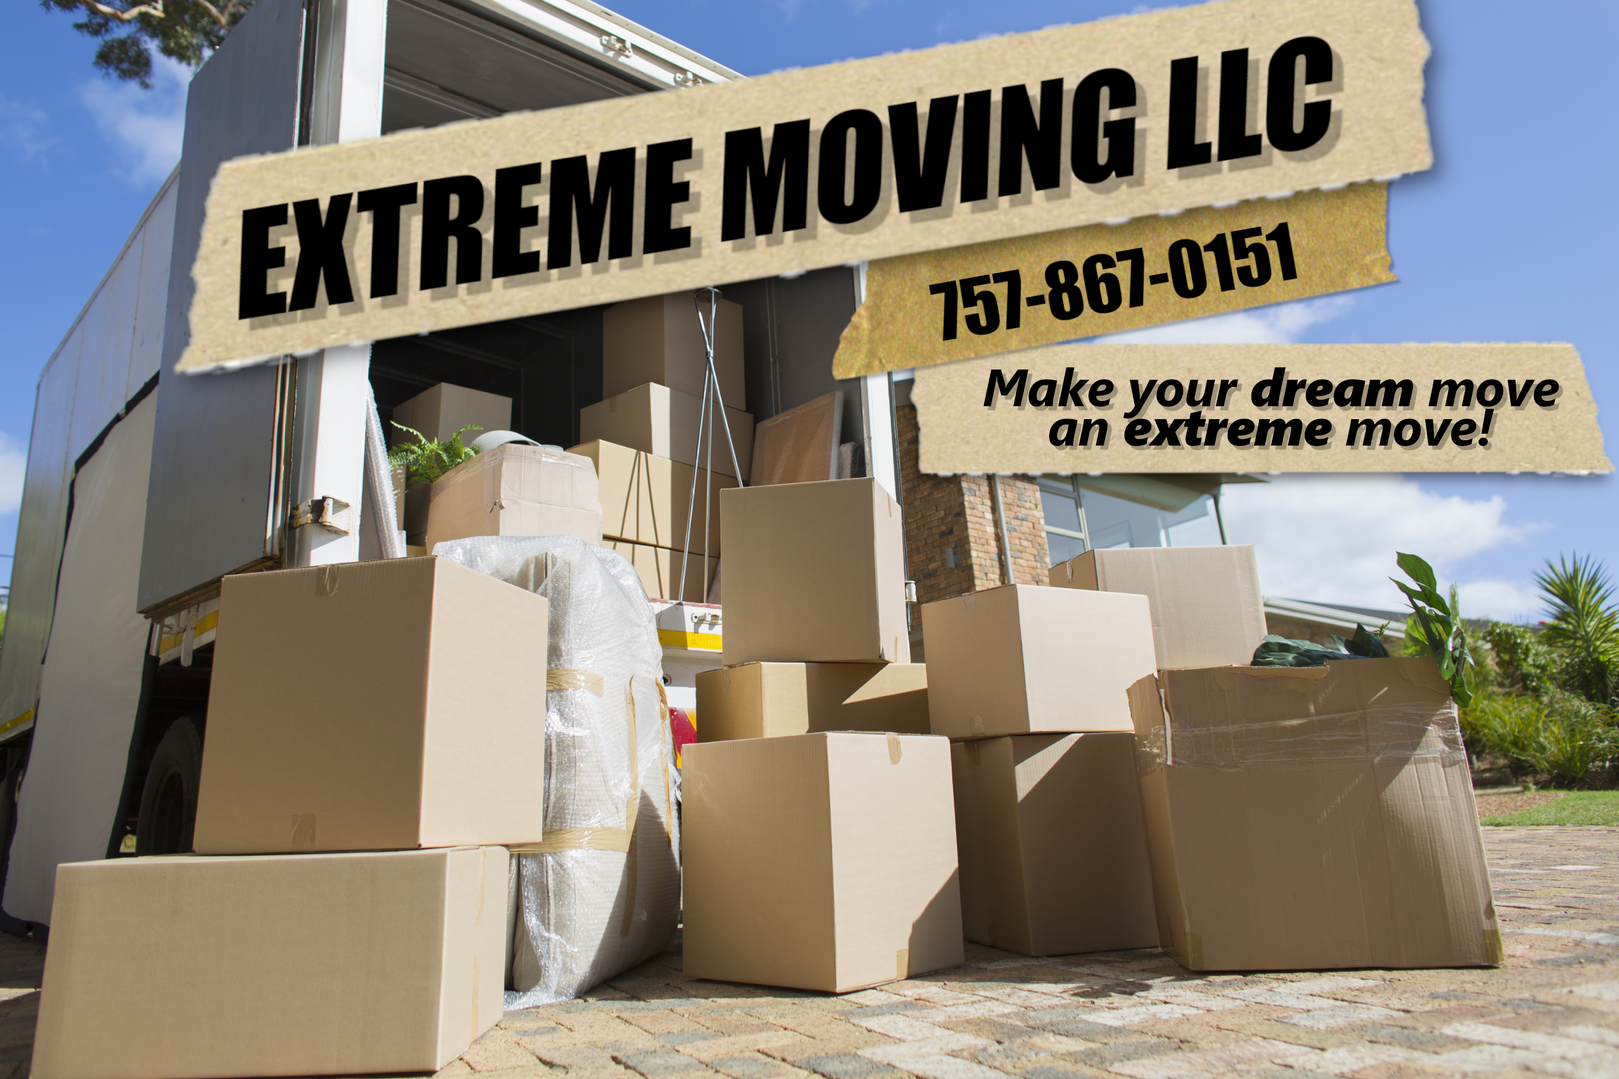 extreme moving llc.png